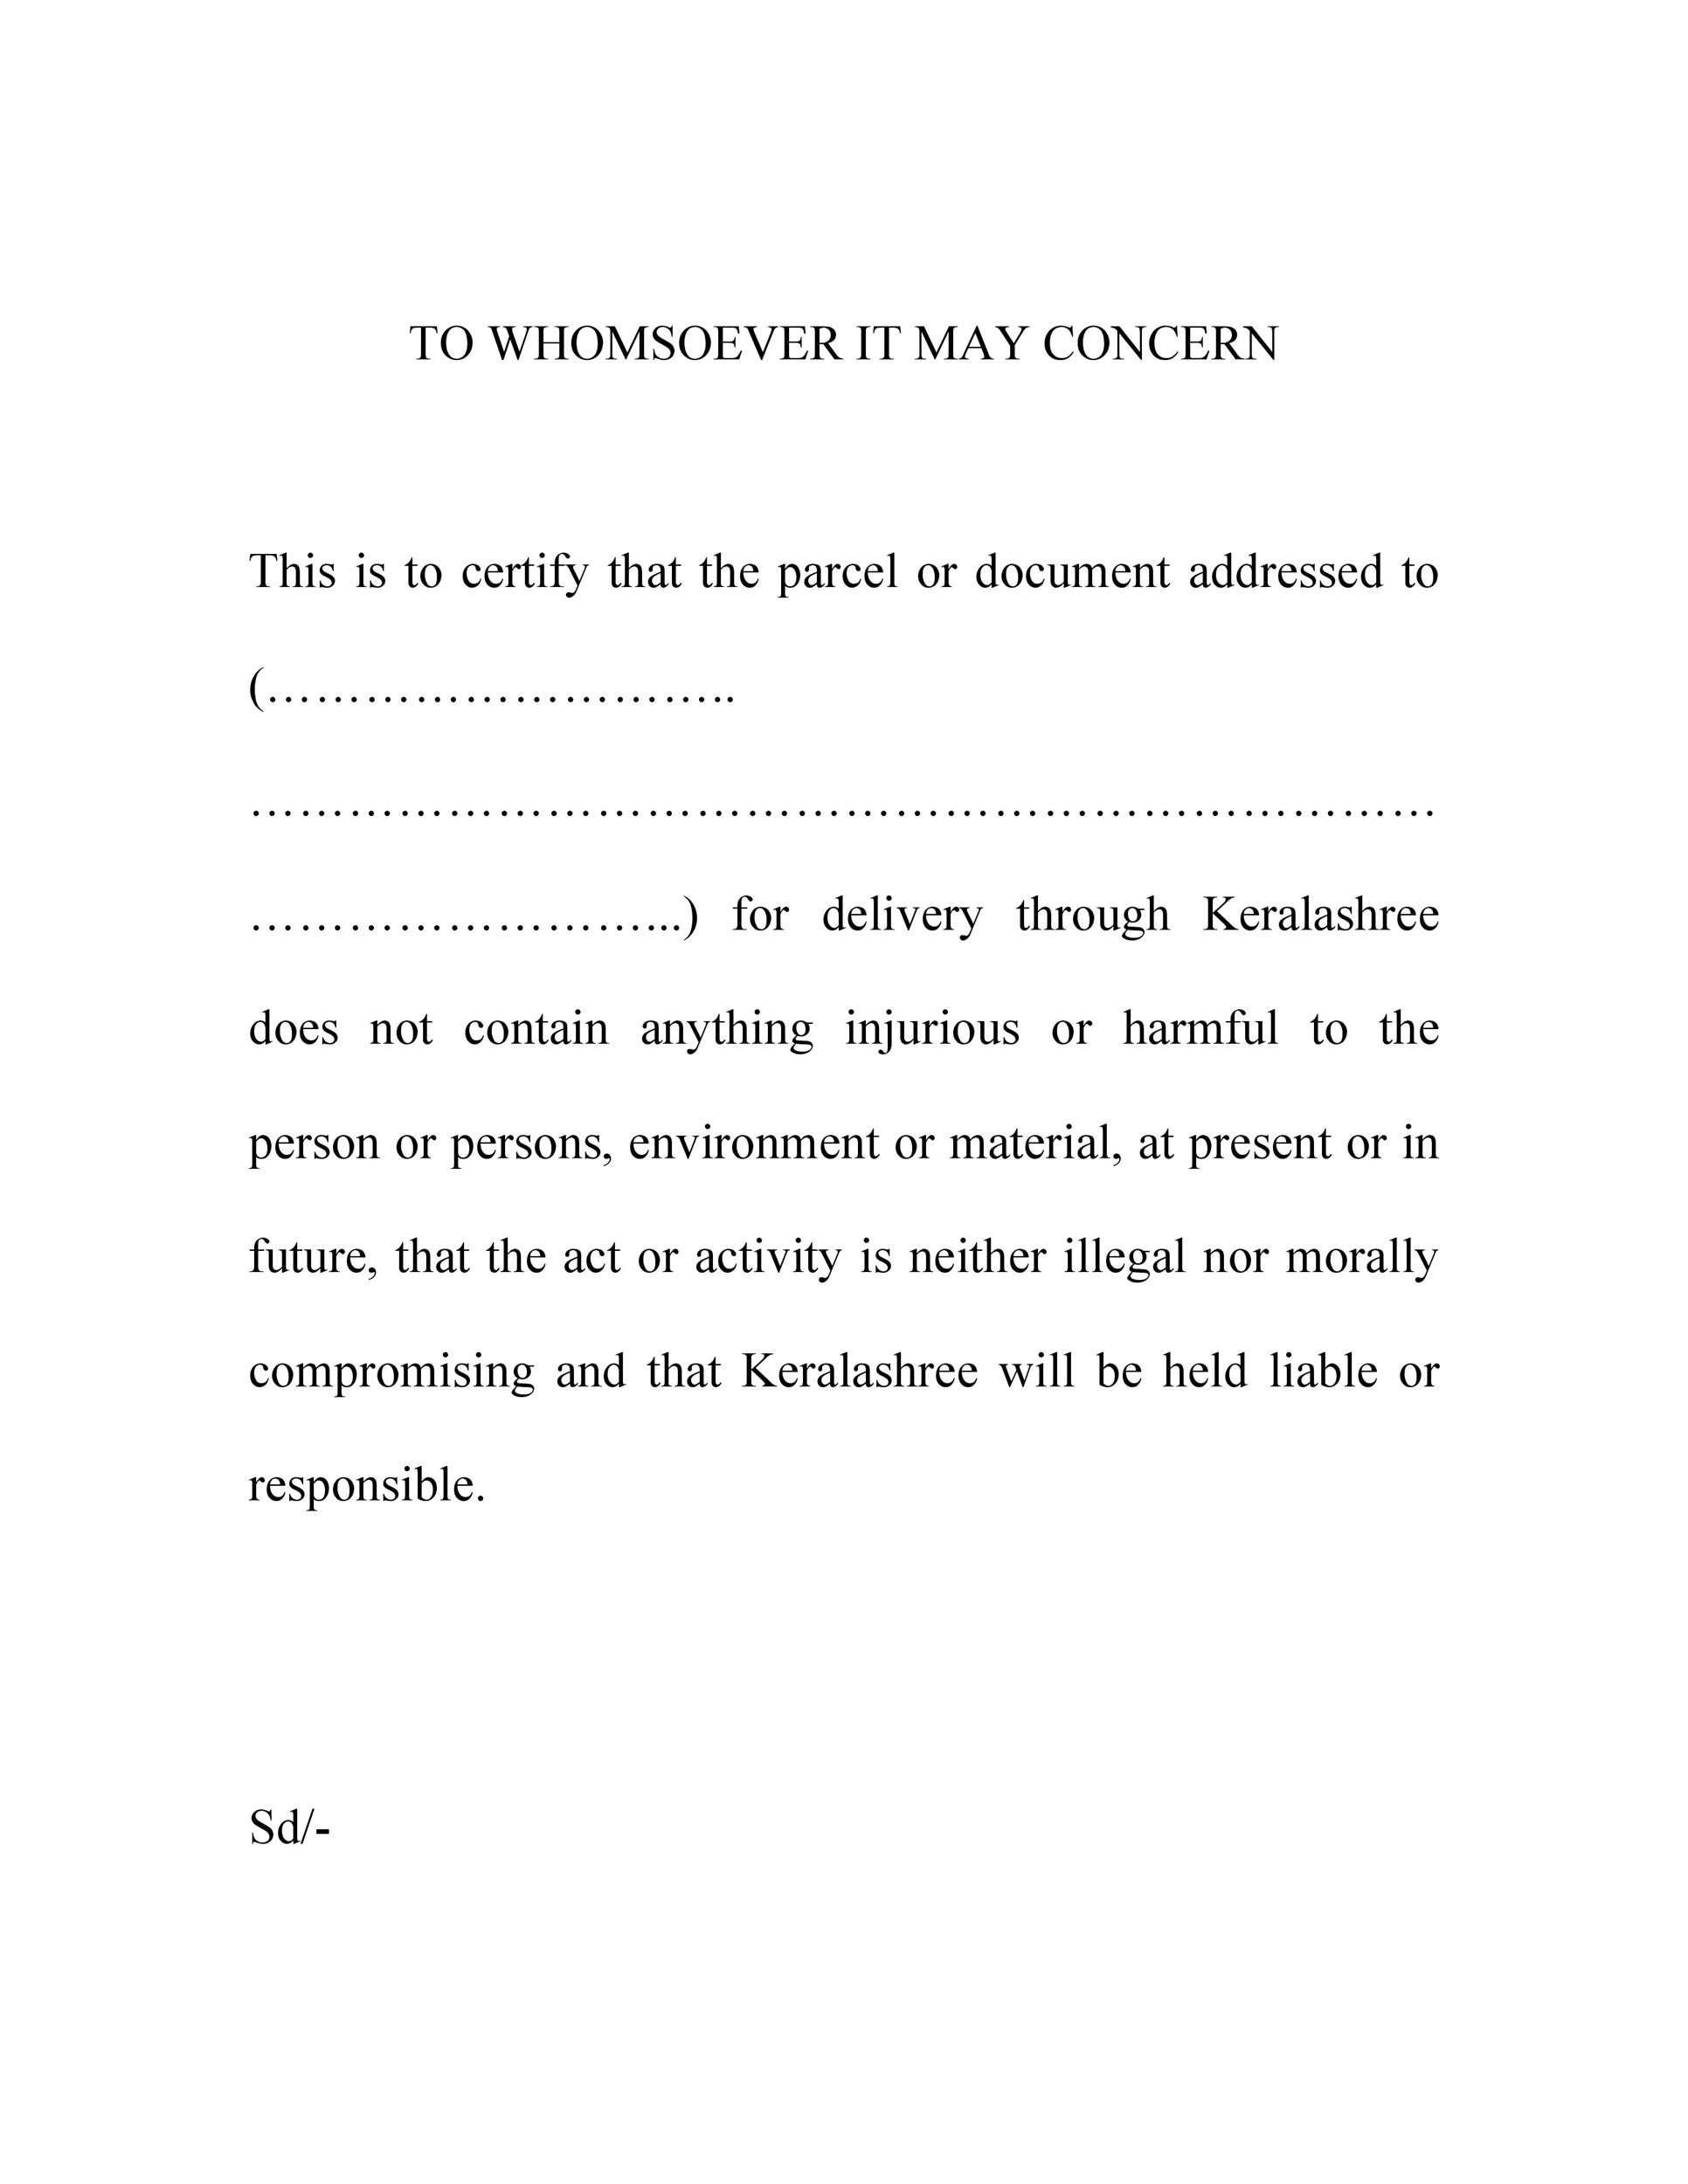 Free to whom it may concern letter 50